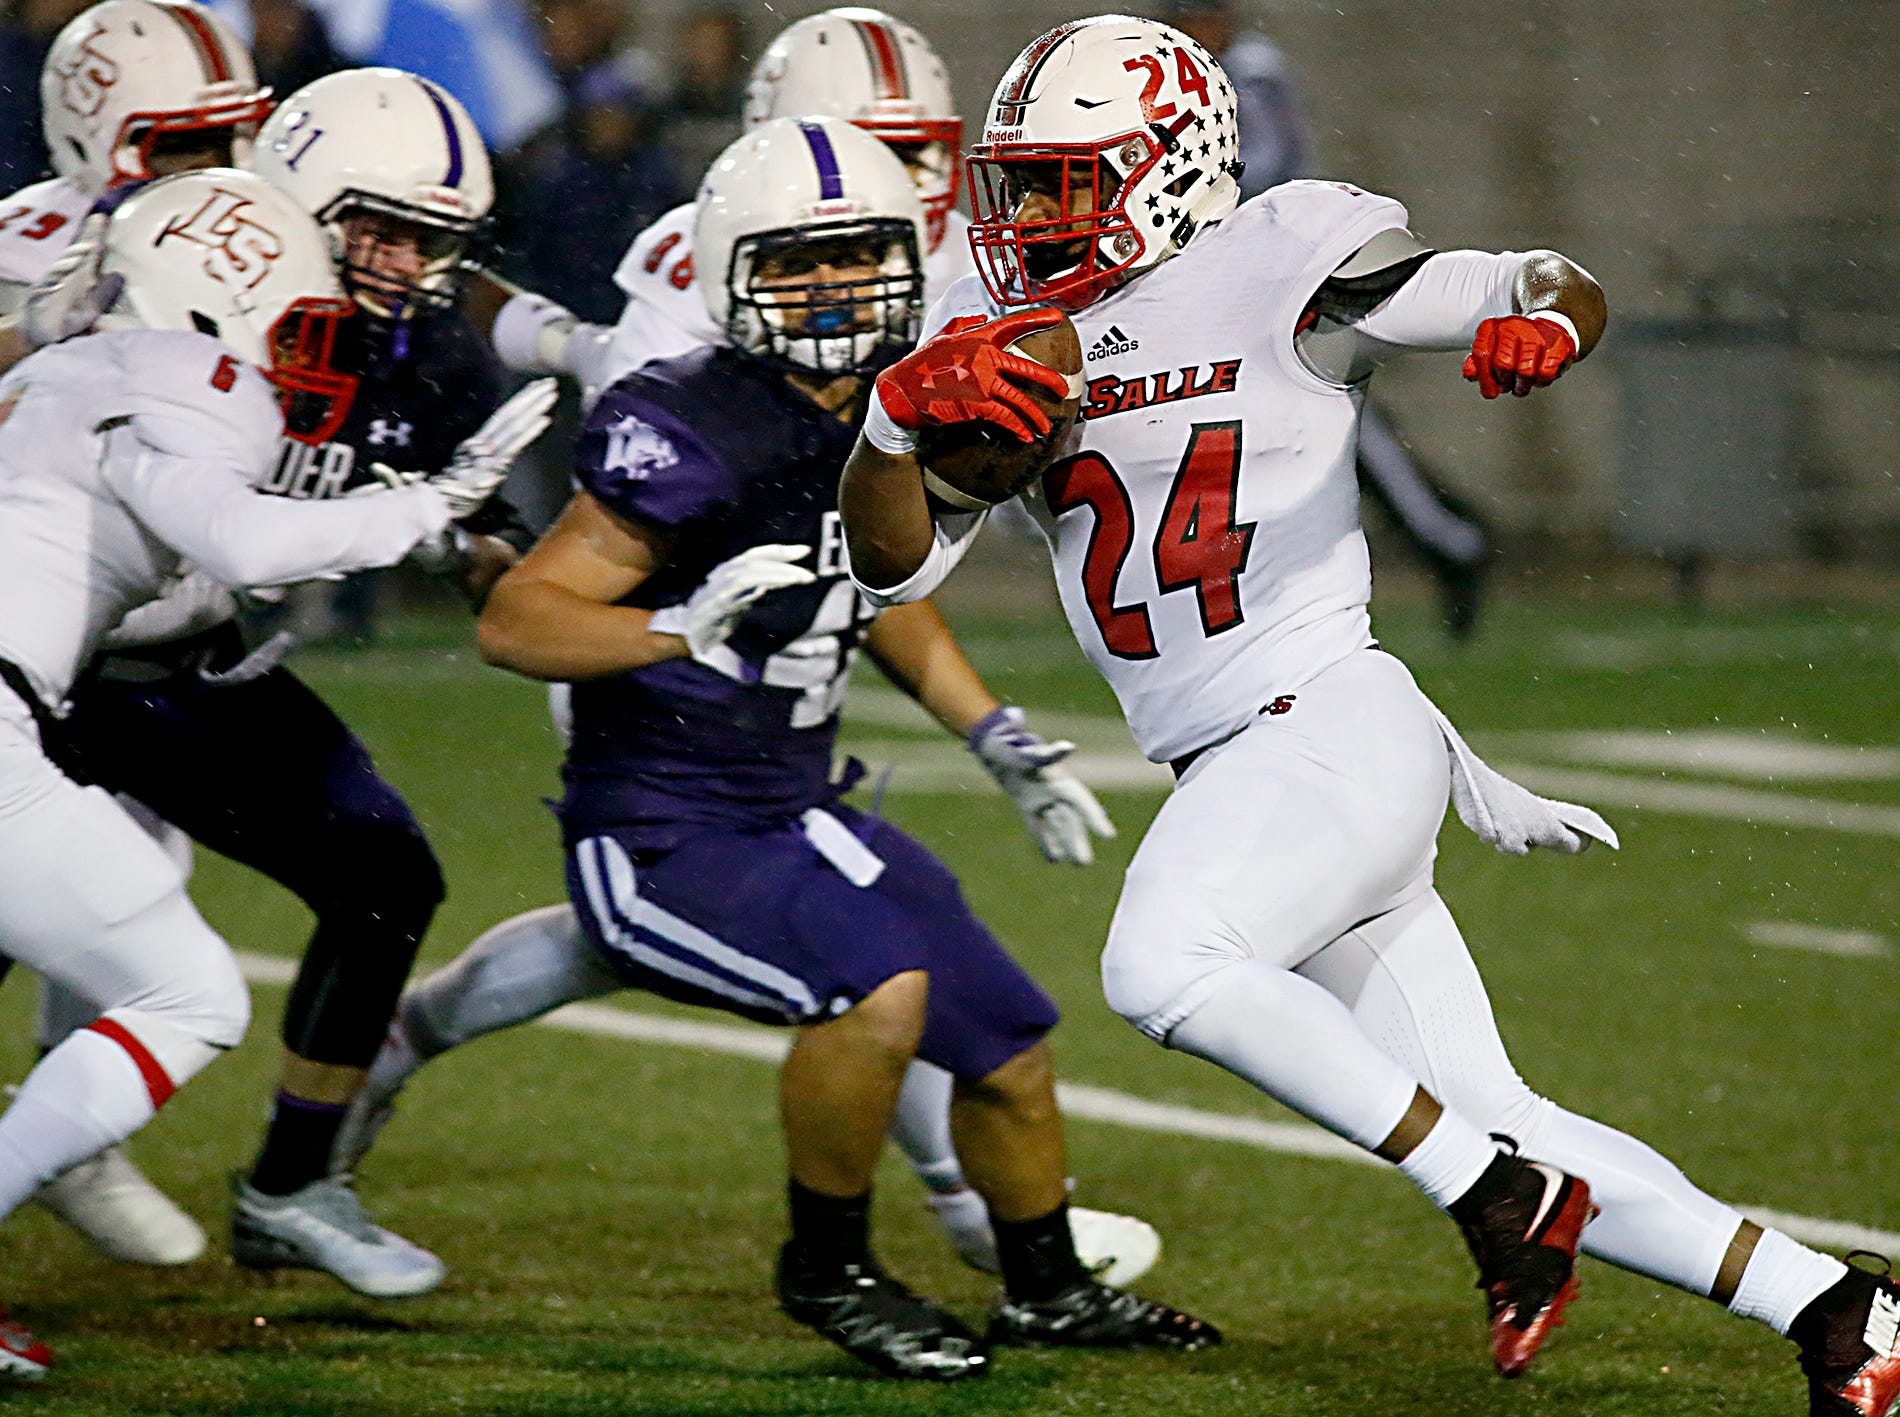 La Salle running back Cameron Porter carries the ball against Elder during their game at The Pit in Cincinnati Friday, Oct. 26, 2018.